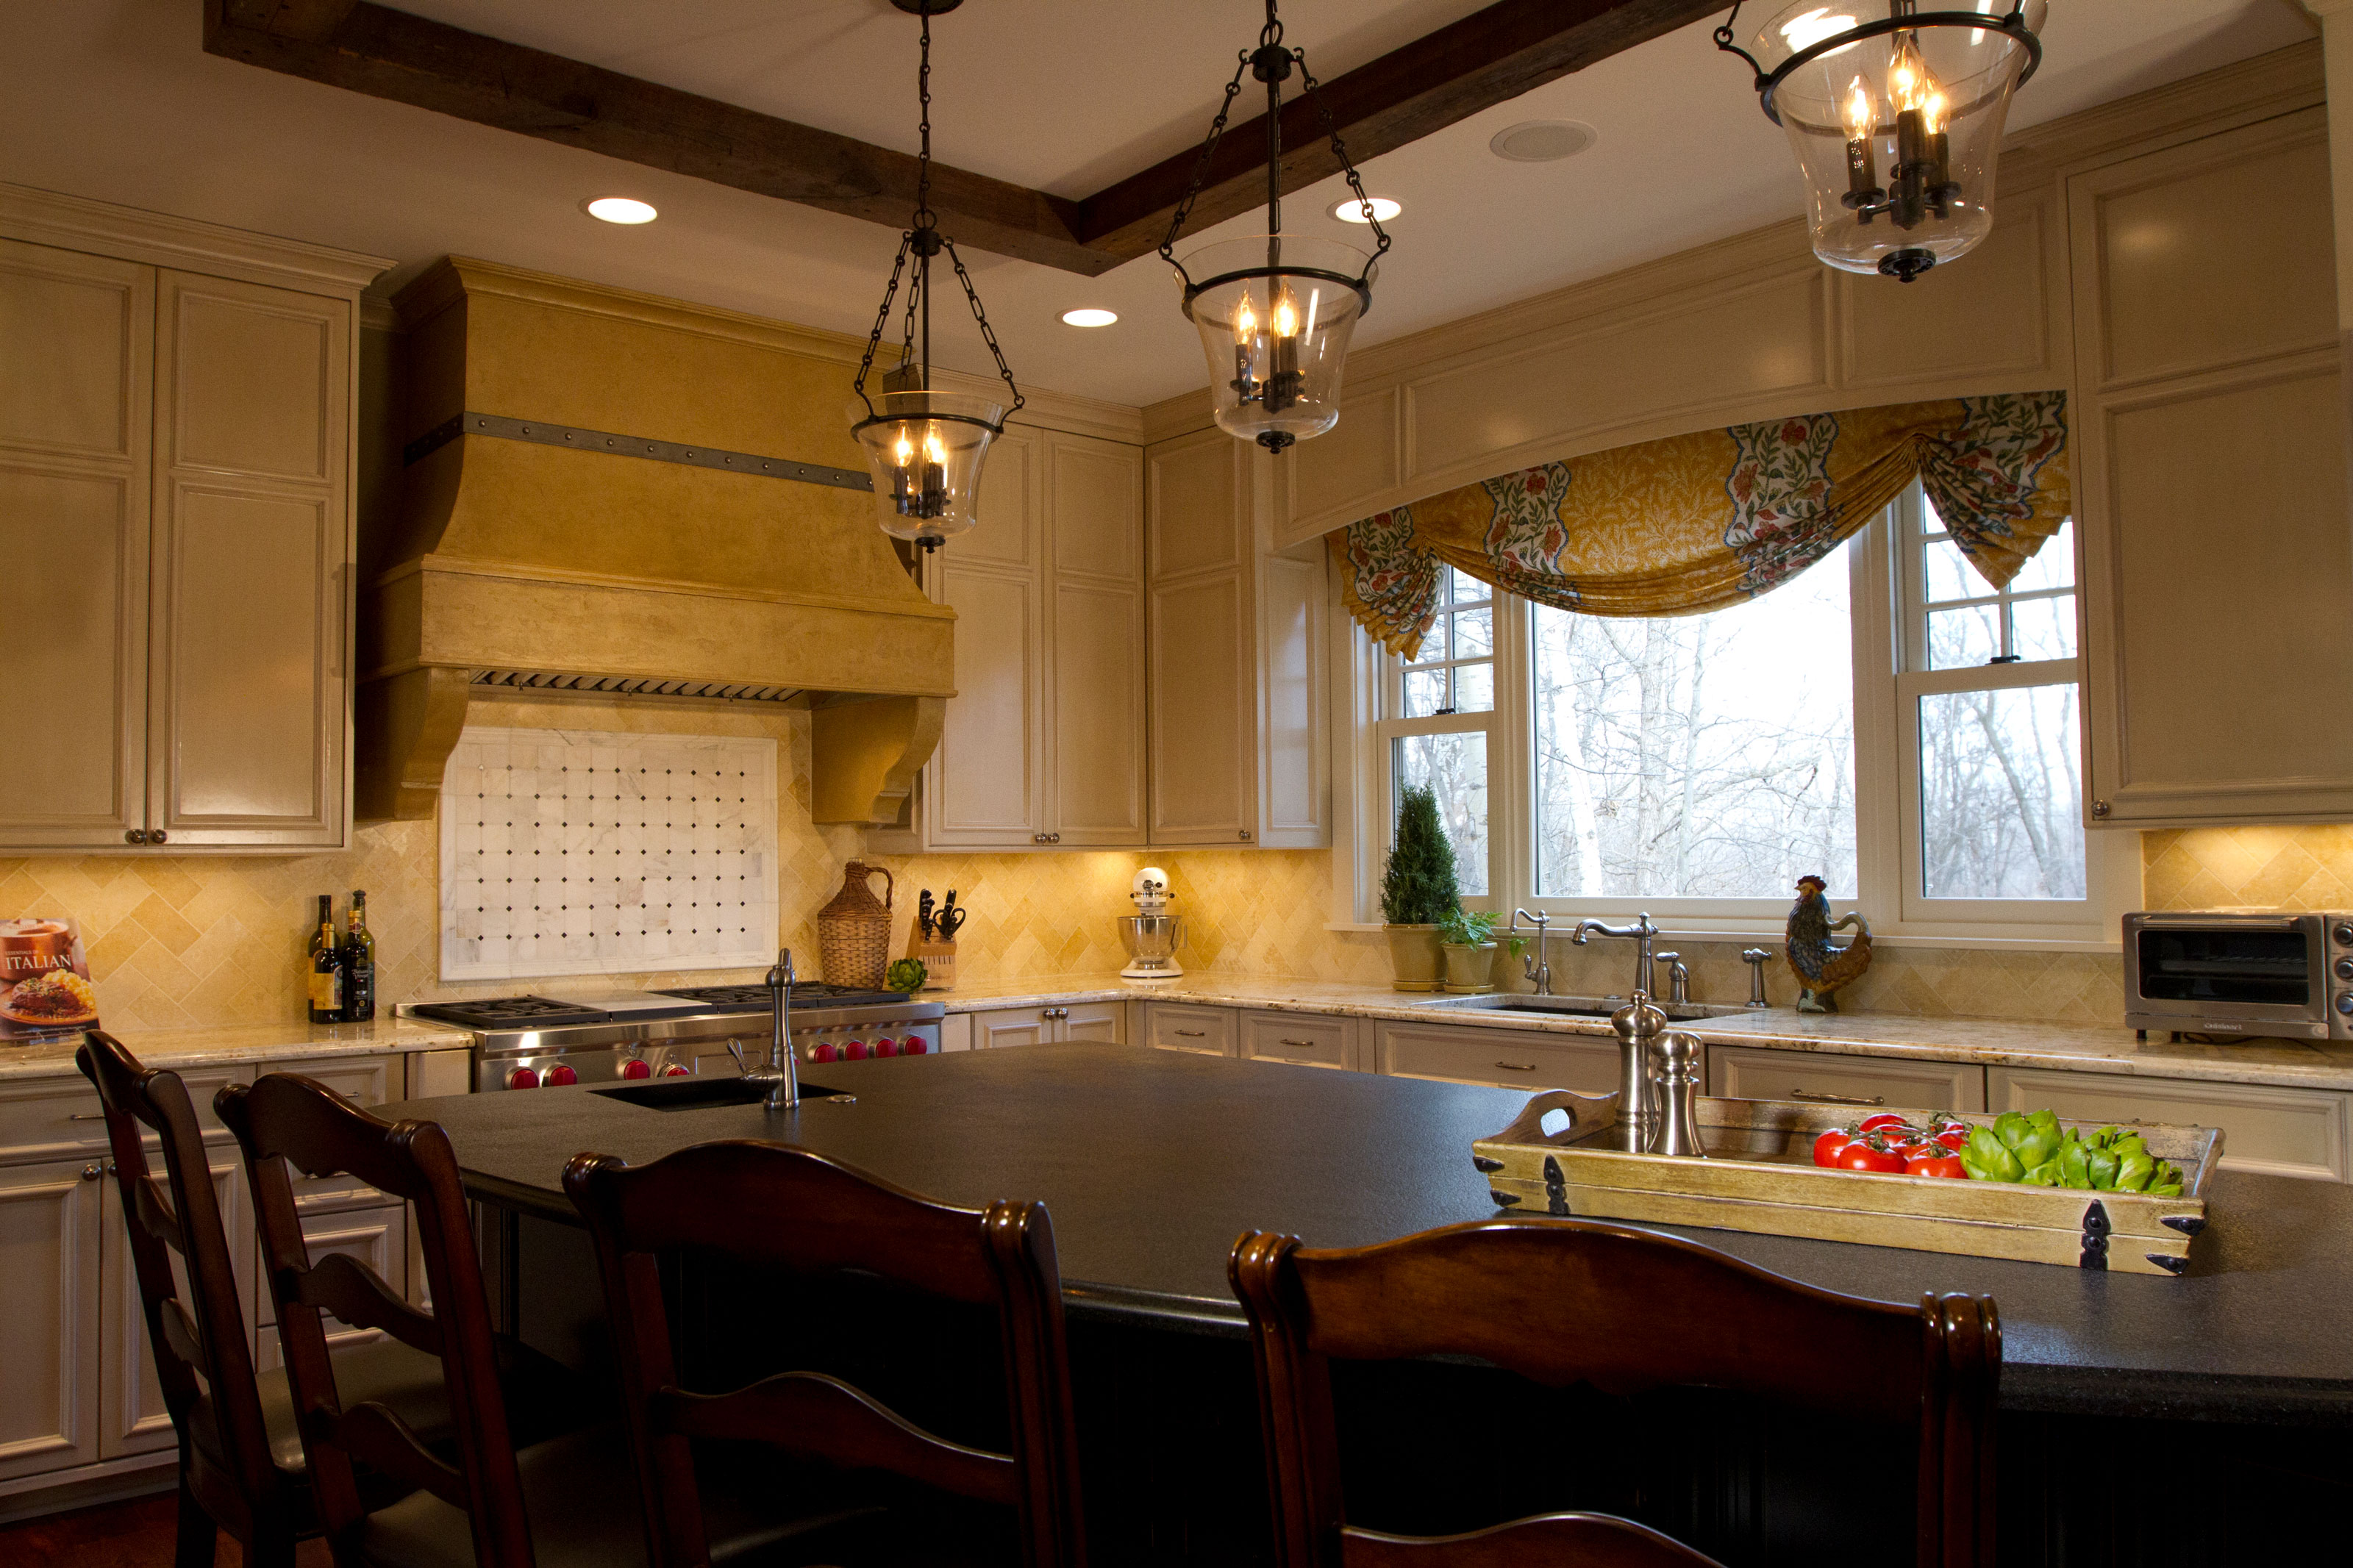 Italian Kitchen of Medina - Destiny Homes